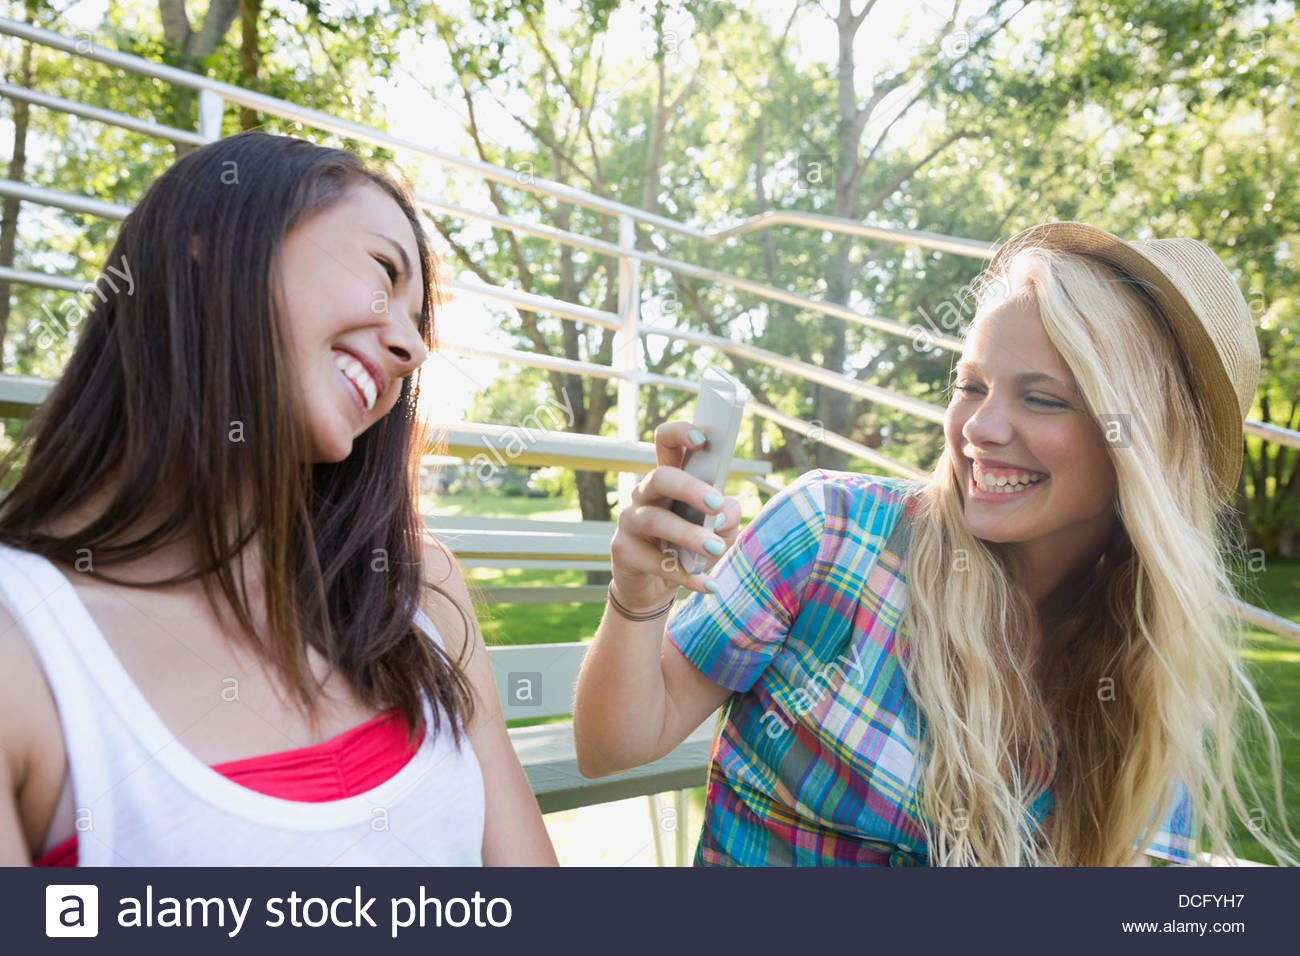 Teenage girl taking picture of friend on smart phone - Stock Image